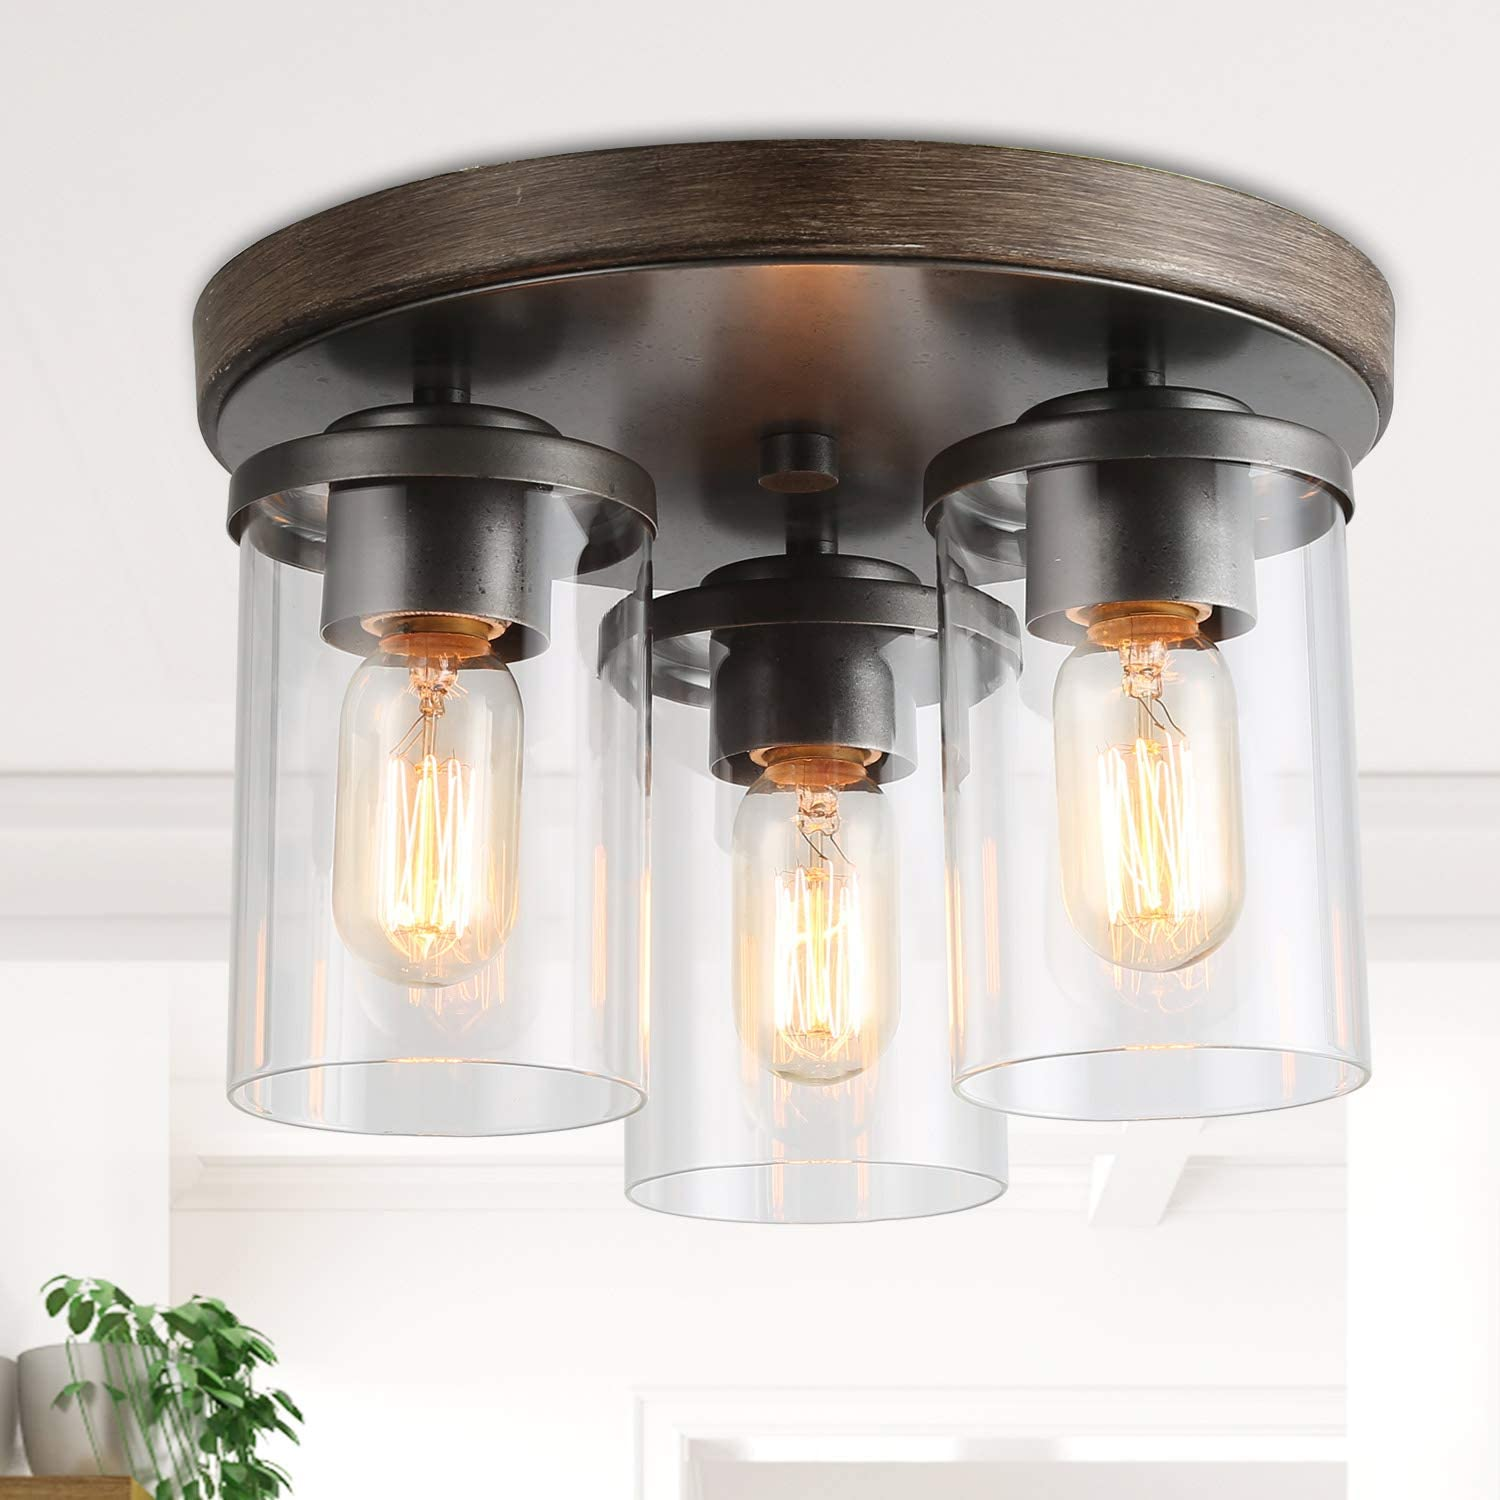 Laluz 3 Semi Flush Mount Ceiling Light Farmhouse Fixture In Faux Wood And Rustic Black Metal Finish With 3 Cylindrical Clear Glass Shades Vintage Style For Foyer Hallway Kitchen Dining Rooms Amazon Com